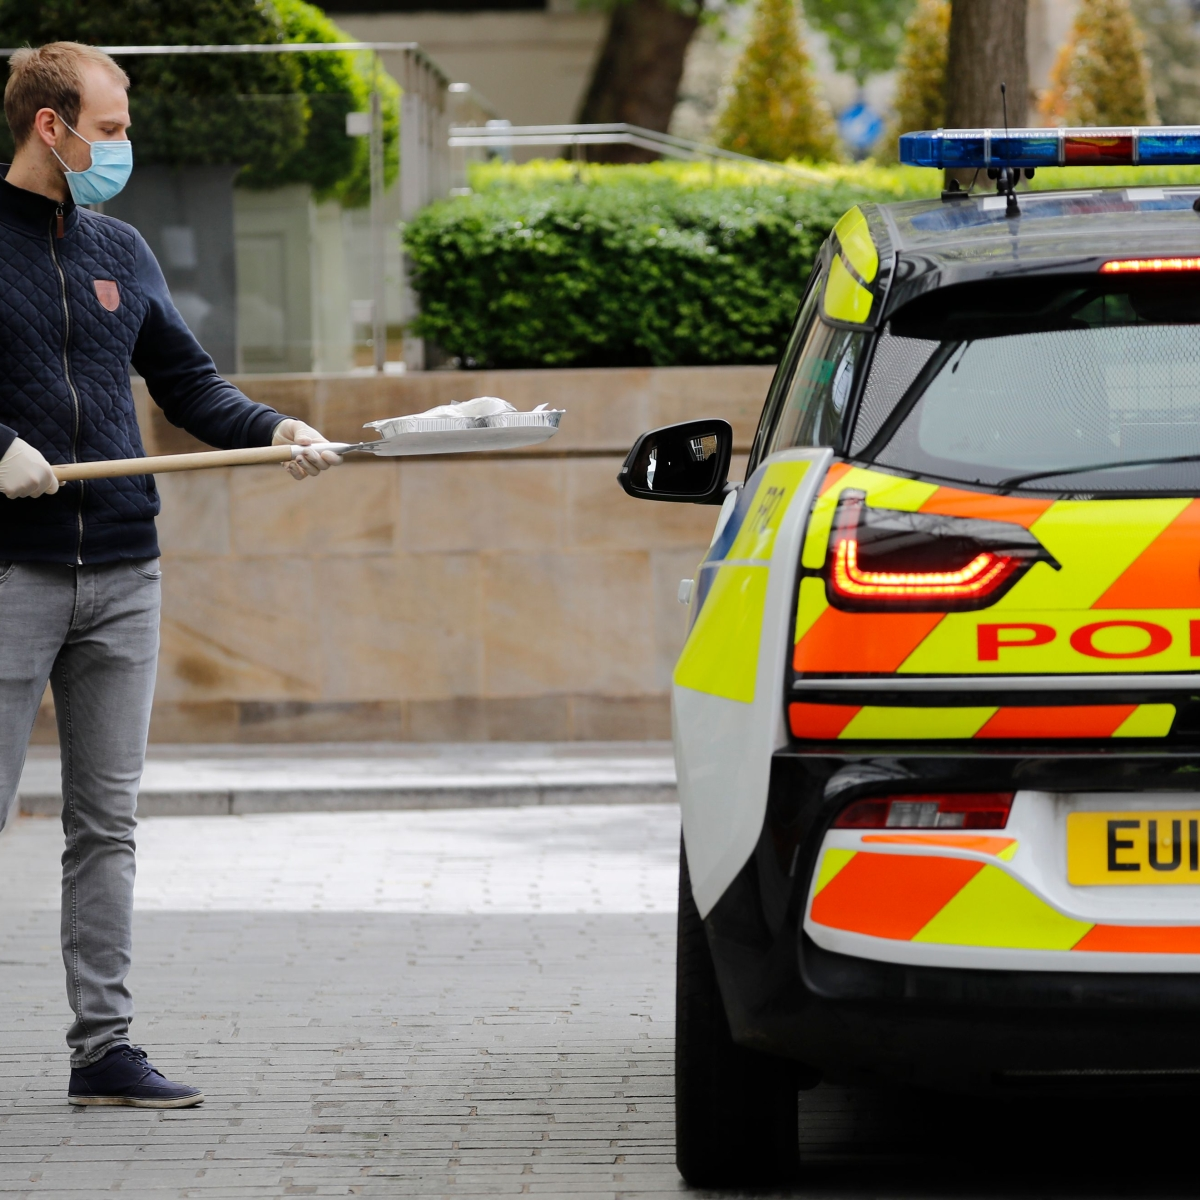 UK mulls doubling maximum sentence for assaulting emergency workers